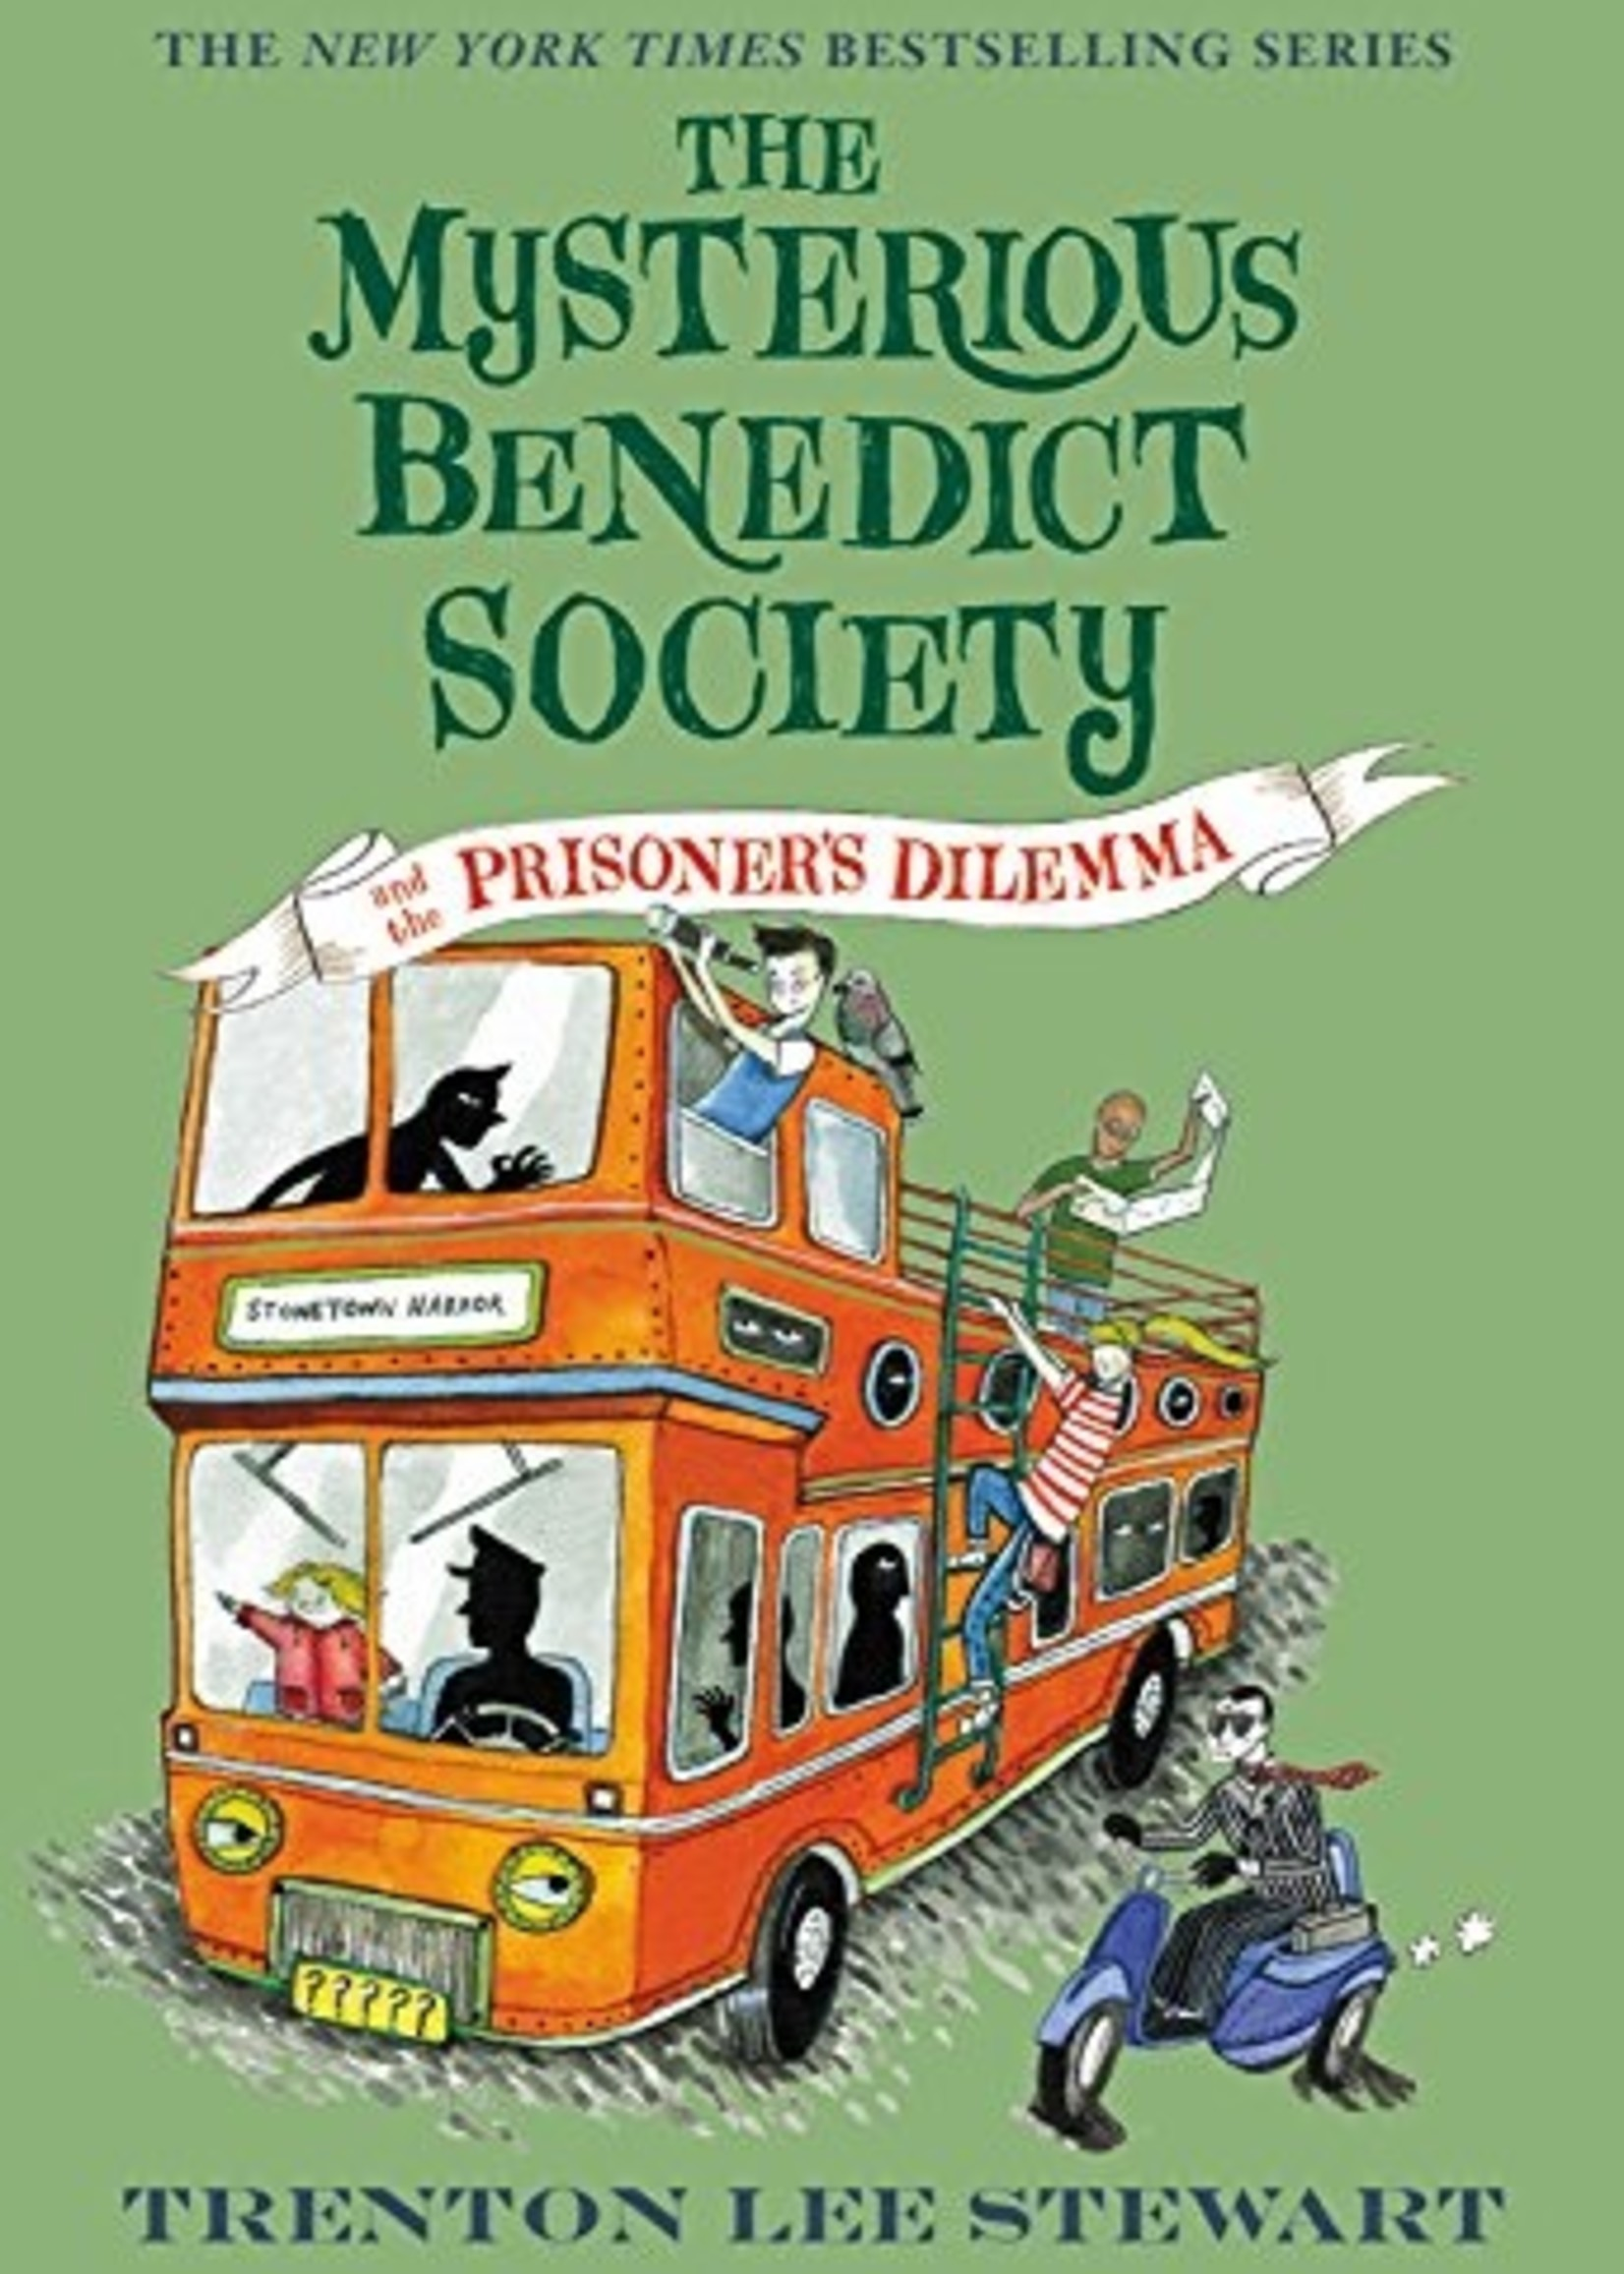 The Mysterious Benedict Society #03, The Prisoner's Dilemma - Paperback